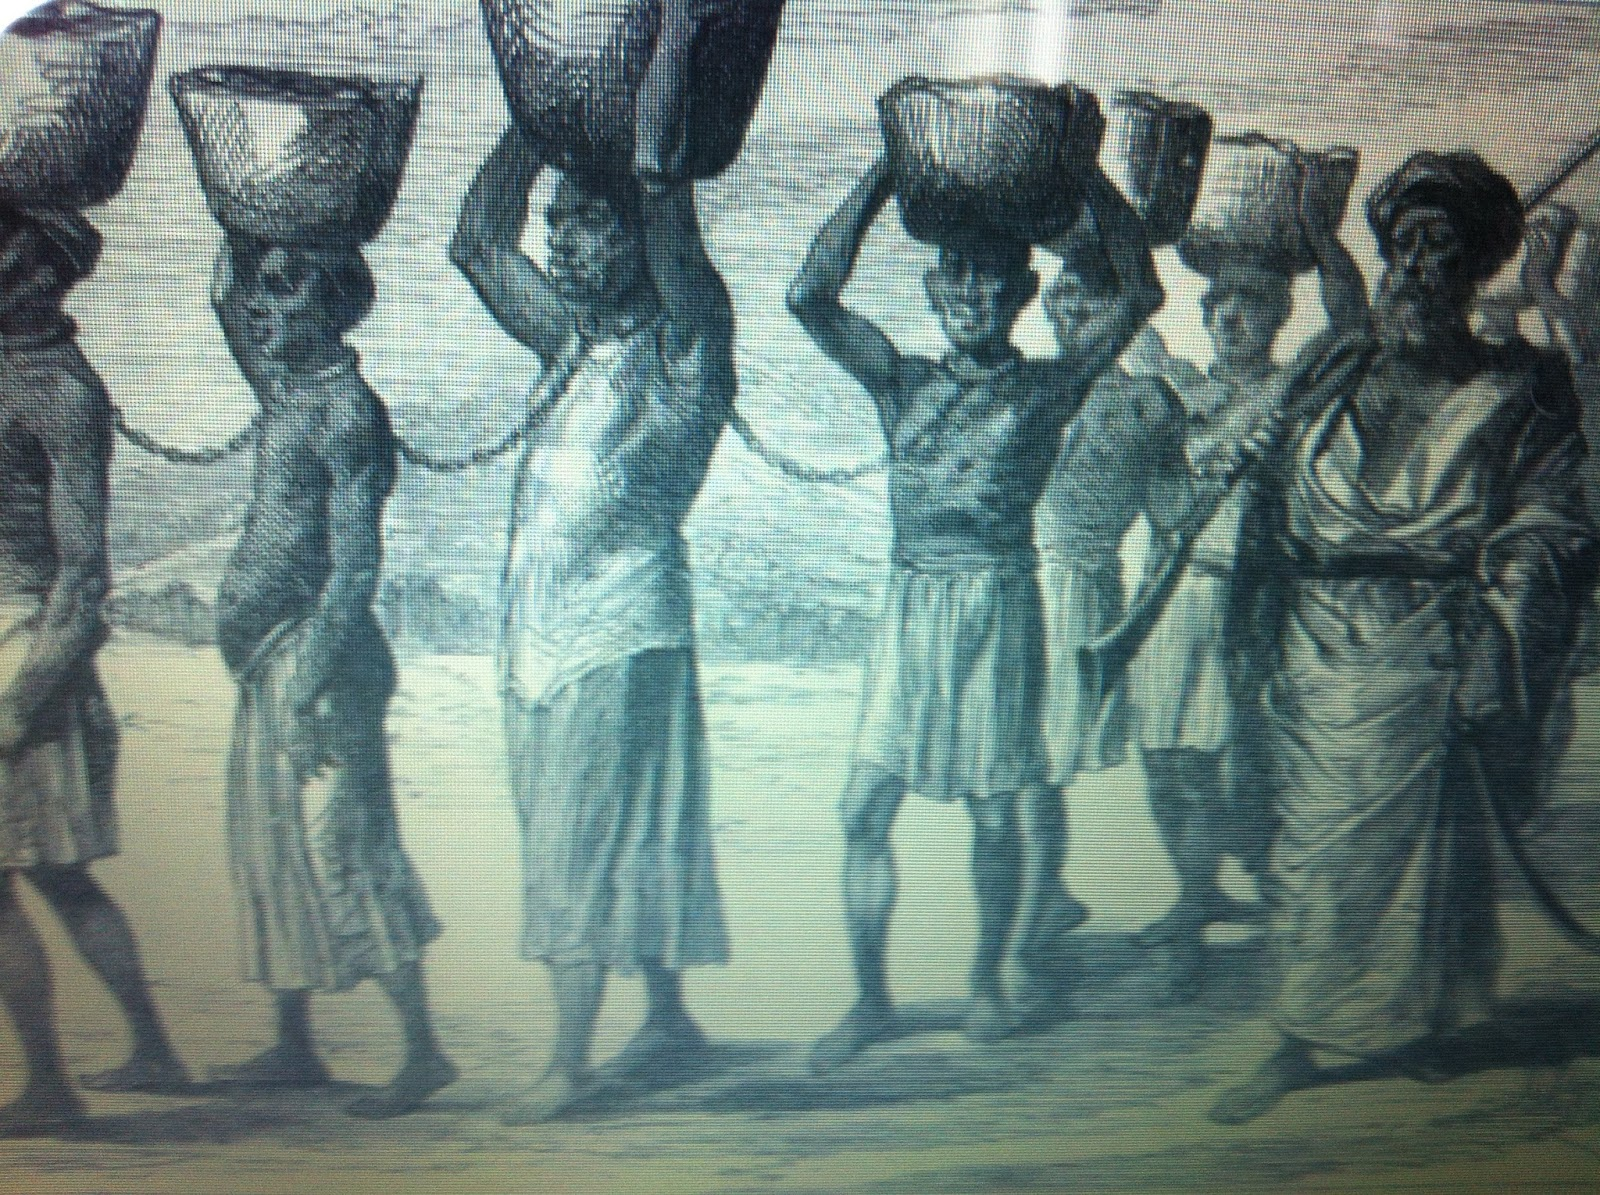 an introduction to the history of african slavery Slavery and free blacks microfilm collection 6-3-2017 although slavery has existed for almost all of recorded history african interpretations of slavery - interpretations of slavery introduction slavery is known the african slave trade and the an introduction to the history of slavery in africa effects of world slave-trade systems on african.